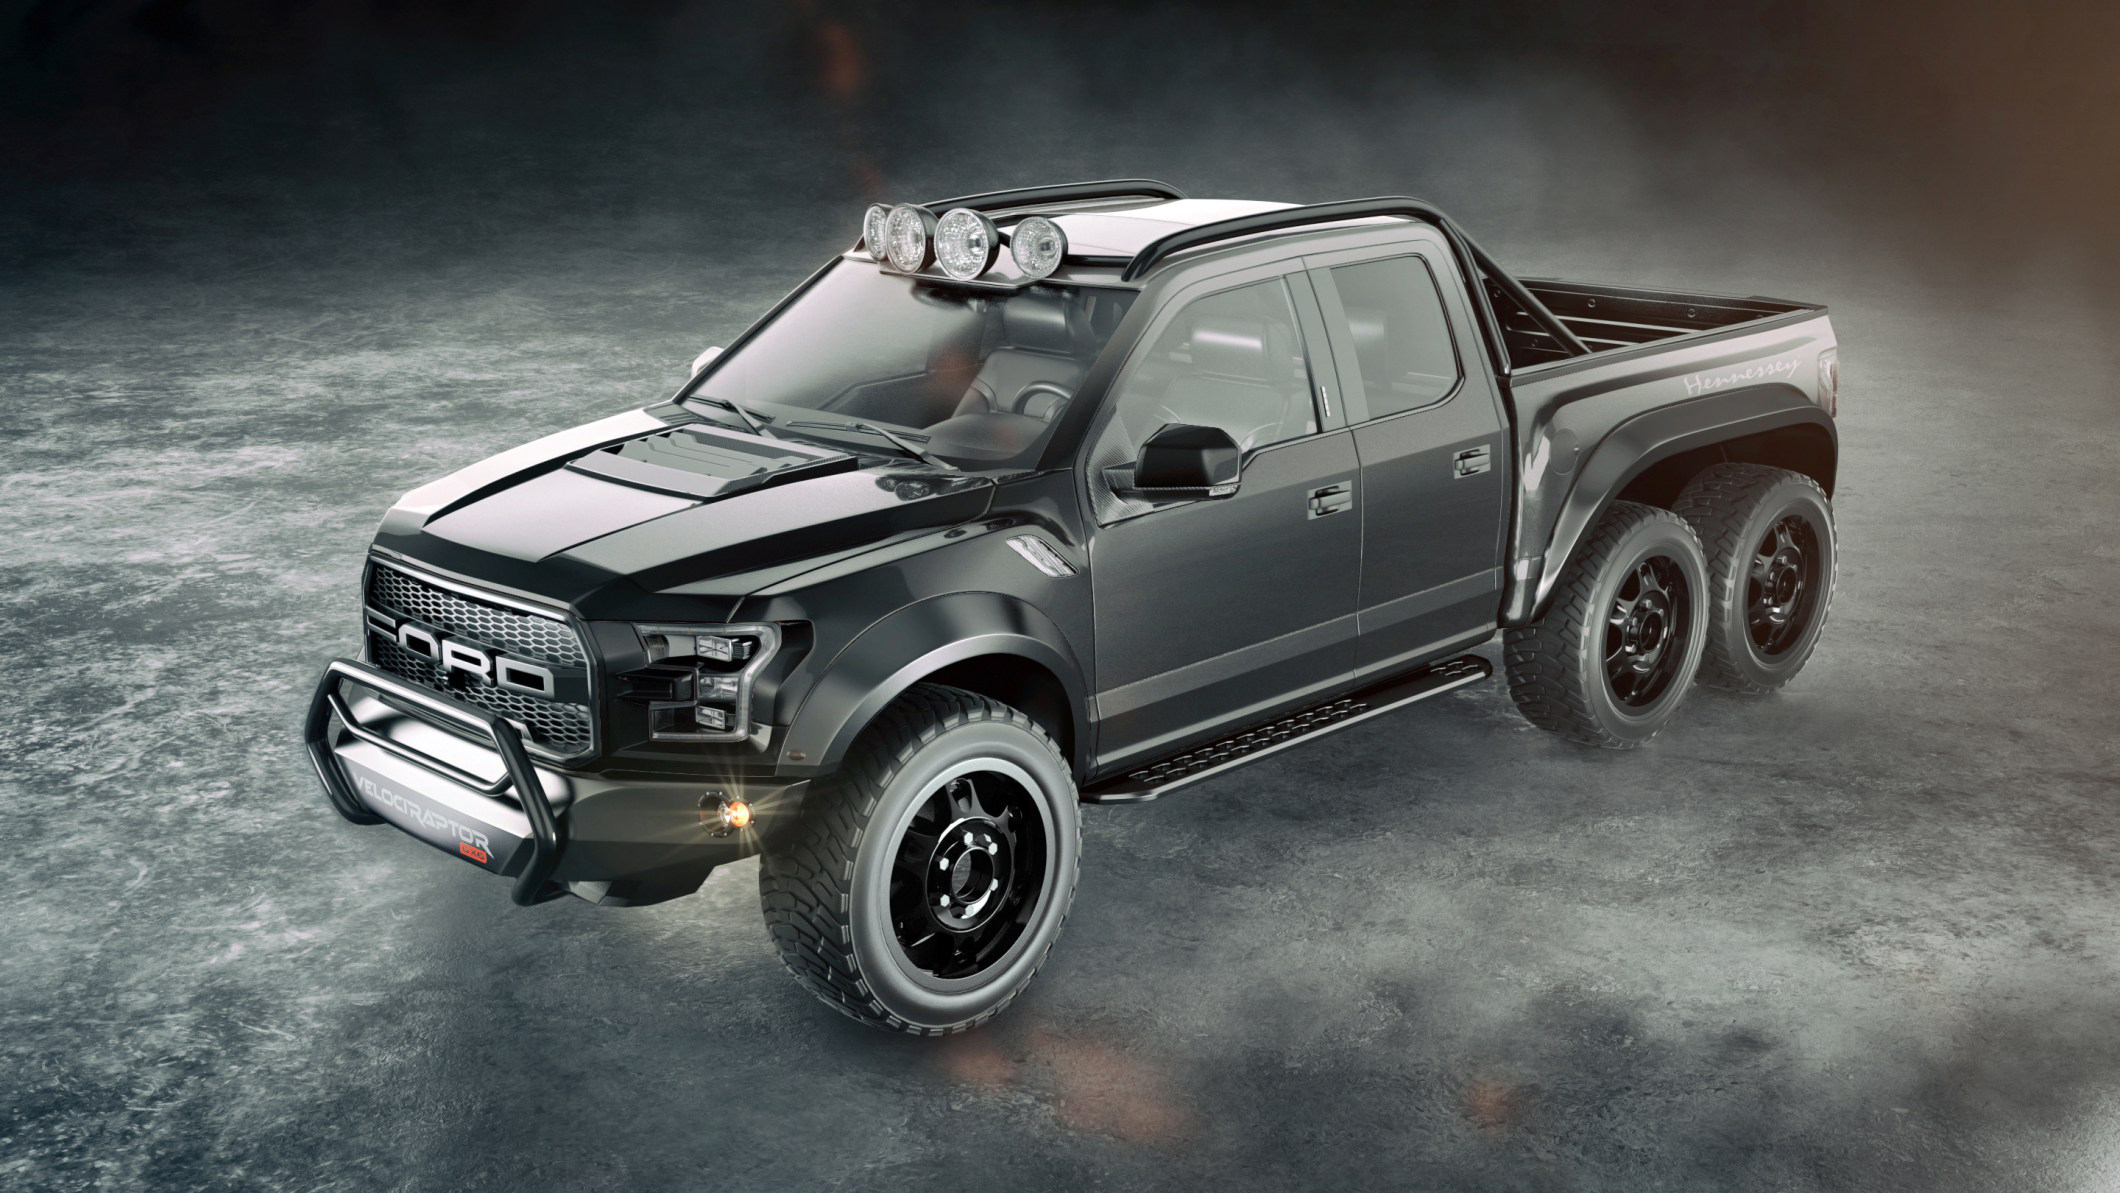 sema muscle a powerful new truck ford s inside hp las convention booth automaker the trucks by rtr vaughn f center vegas massive designed gittin unveils tuesday debuted